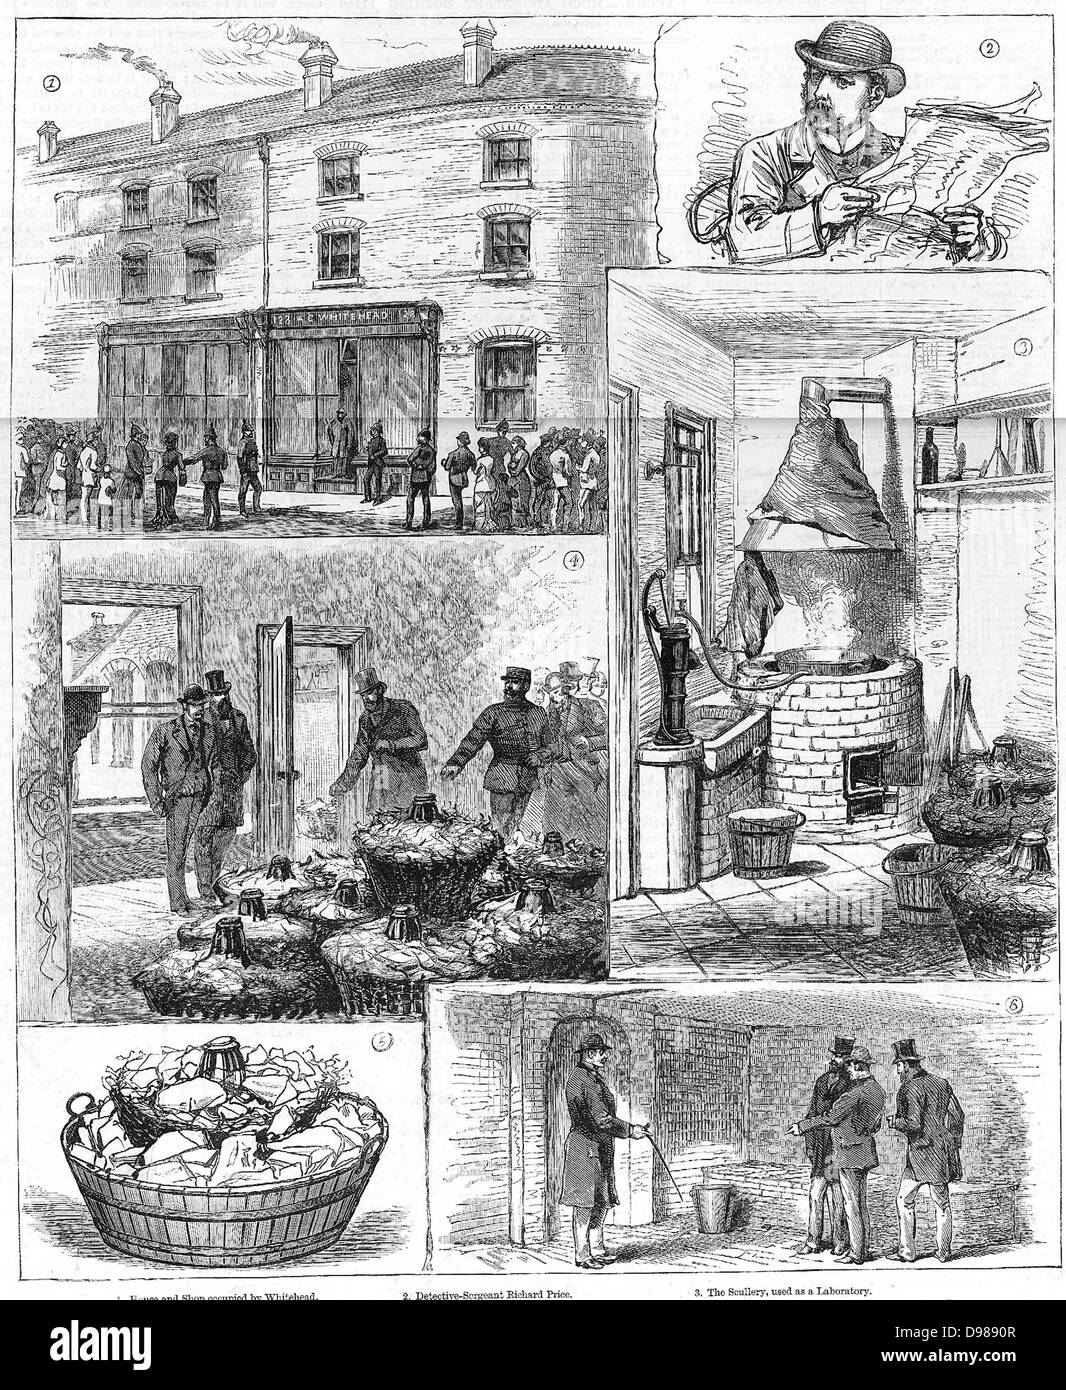 Fenian explosives conspiracy, 1883: Police discovery of nitro-glycerine factory in the Ladywood district of Birmingham. - Stock Image